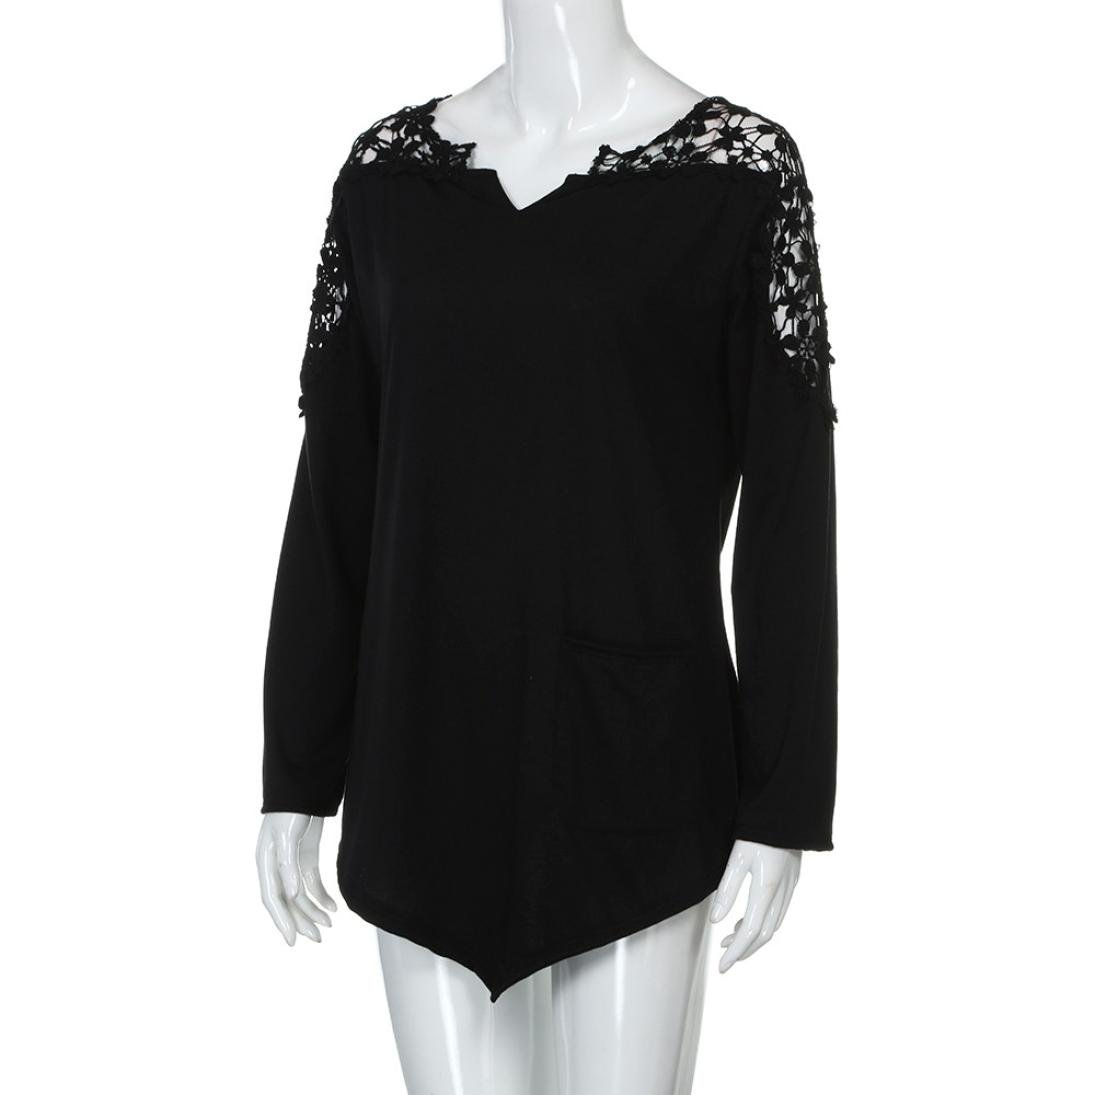 Anxinke Womens Lace Patchwork Hollow Out Long Sleeve Shirts Top V Neck Curved Hem Blouse Plus Size (Black, 7XL) by Anxinke Women Blouse (Image #5)